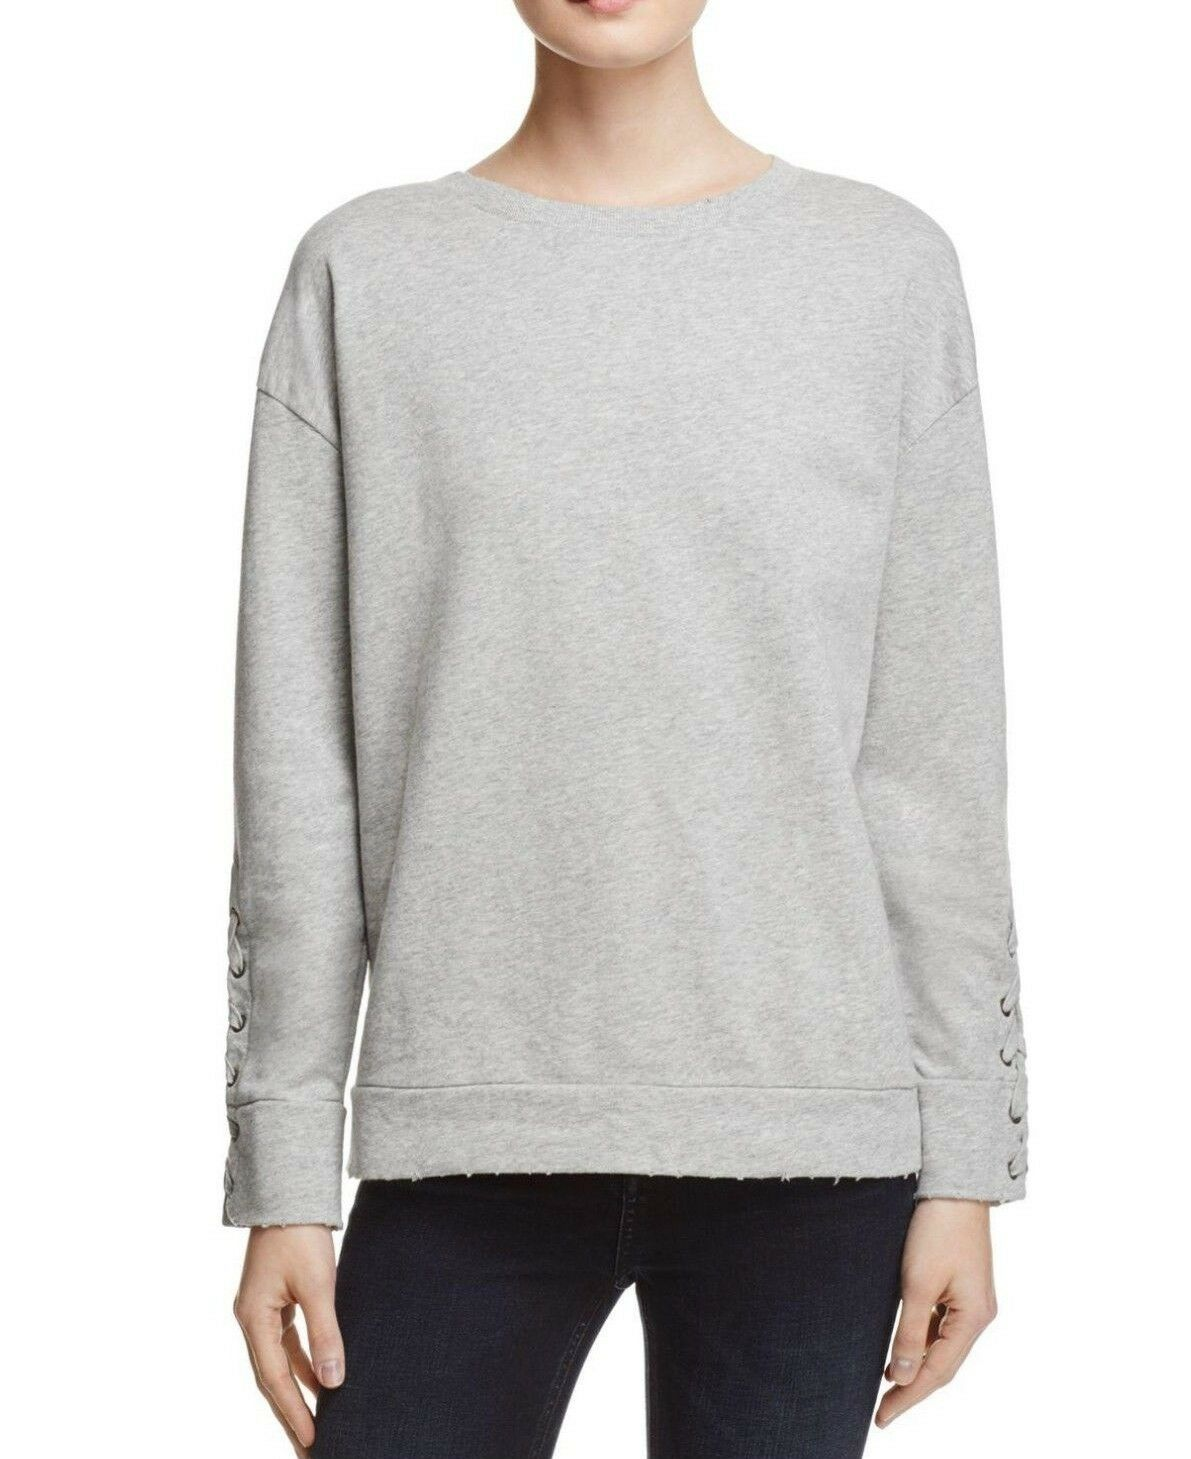 NWT JOE'S SzM MIAYA LACE-UP SLEEVE SWEATSHIRT IN DISTRESSED HEATHER grau